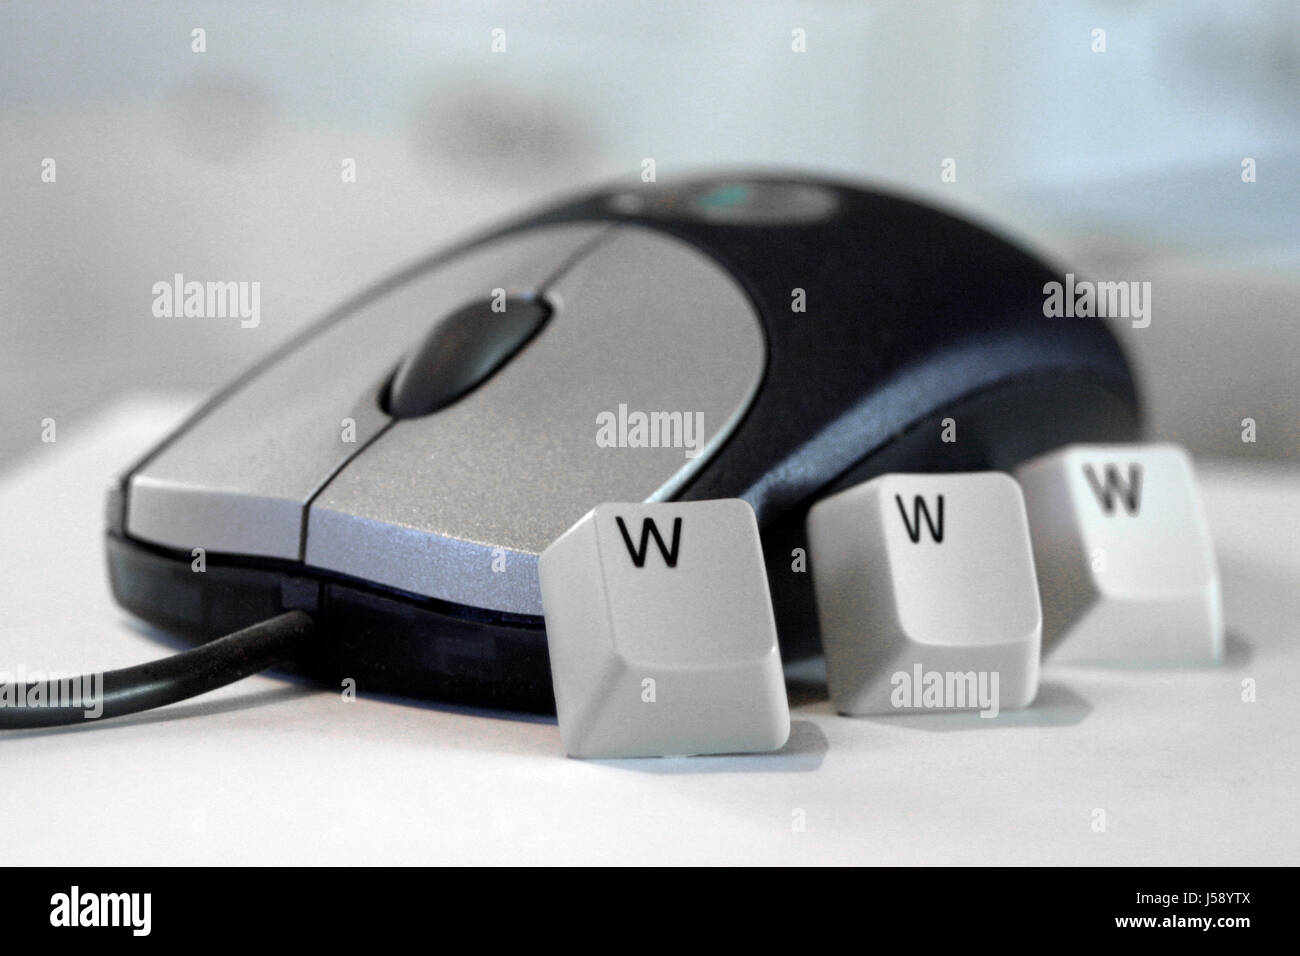 check click steer periphery admission login elemental necessary mouse computer - Stock Image